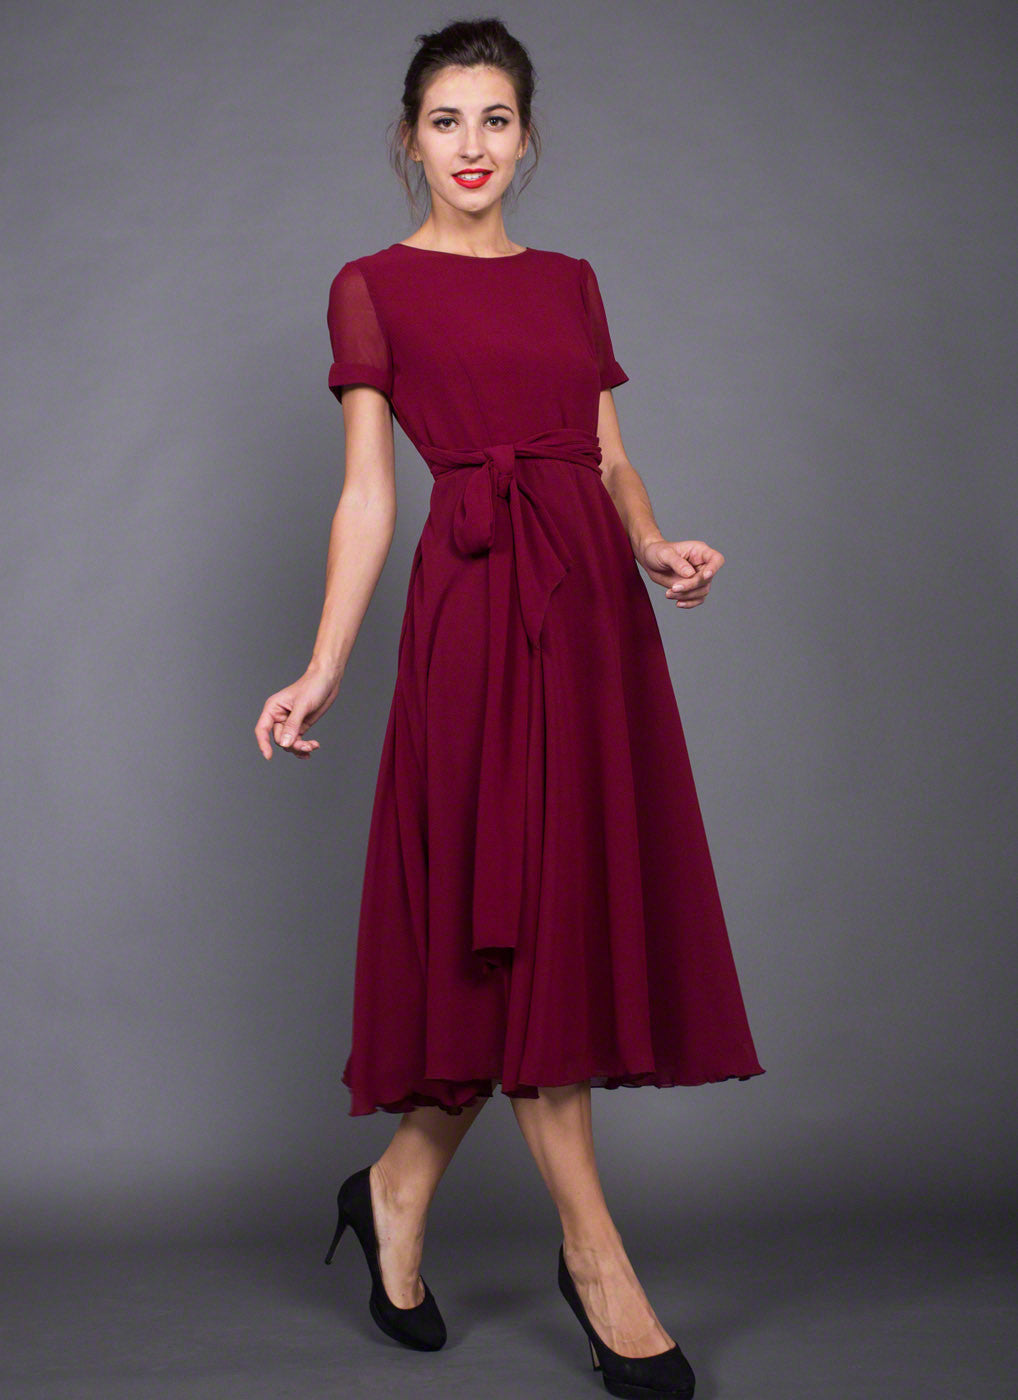 Chiffon dress midi length